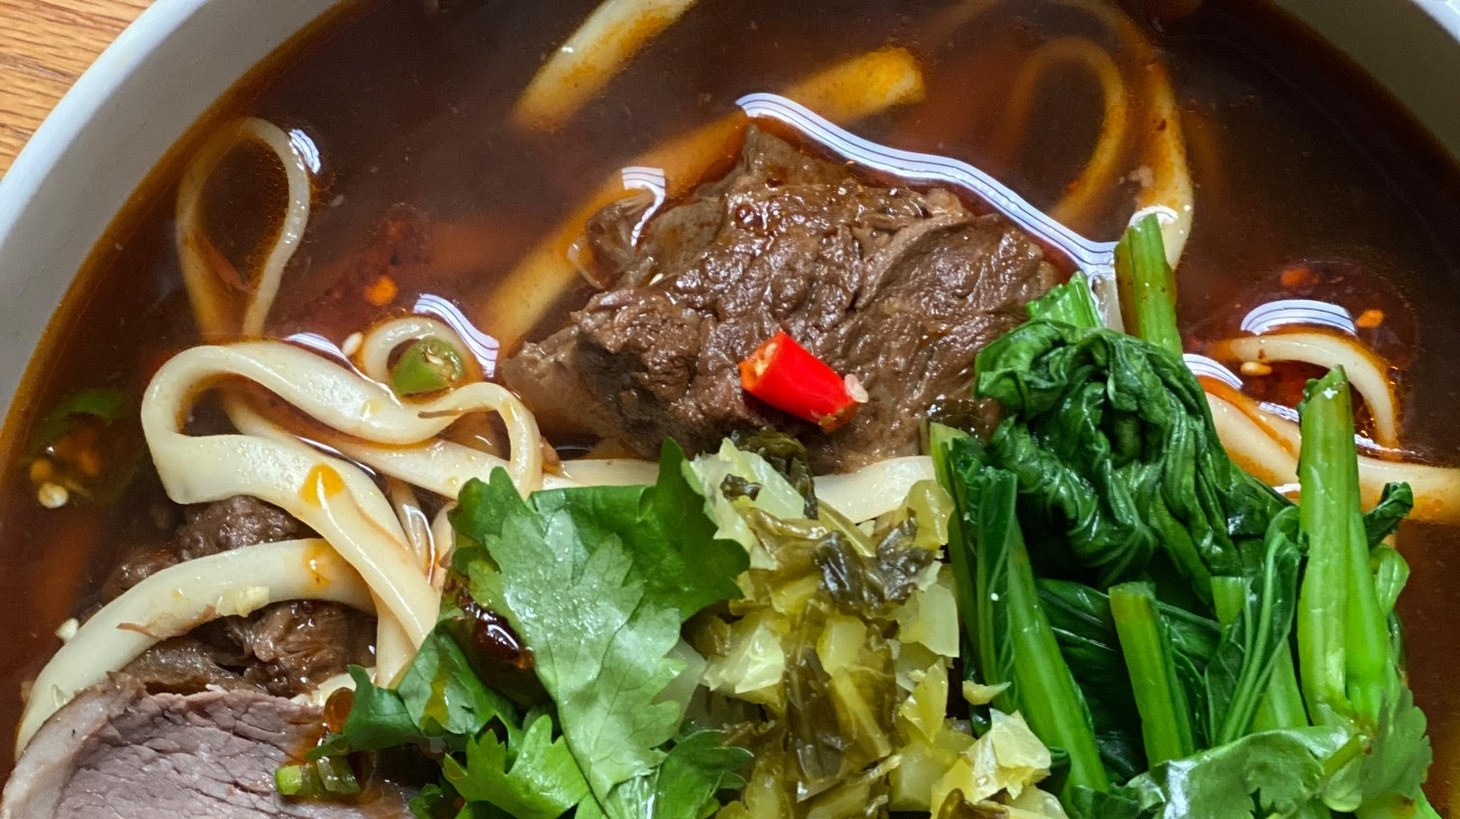 Beef noodles from Yilan Foods in San Francisco have been one of restaurant critic Soleil Ho's pandemic takeout meals. She describes the efforts her fellow San Franciscans are making to track down the city's best takeout.